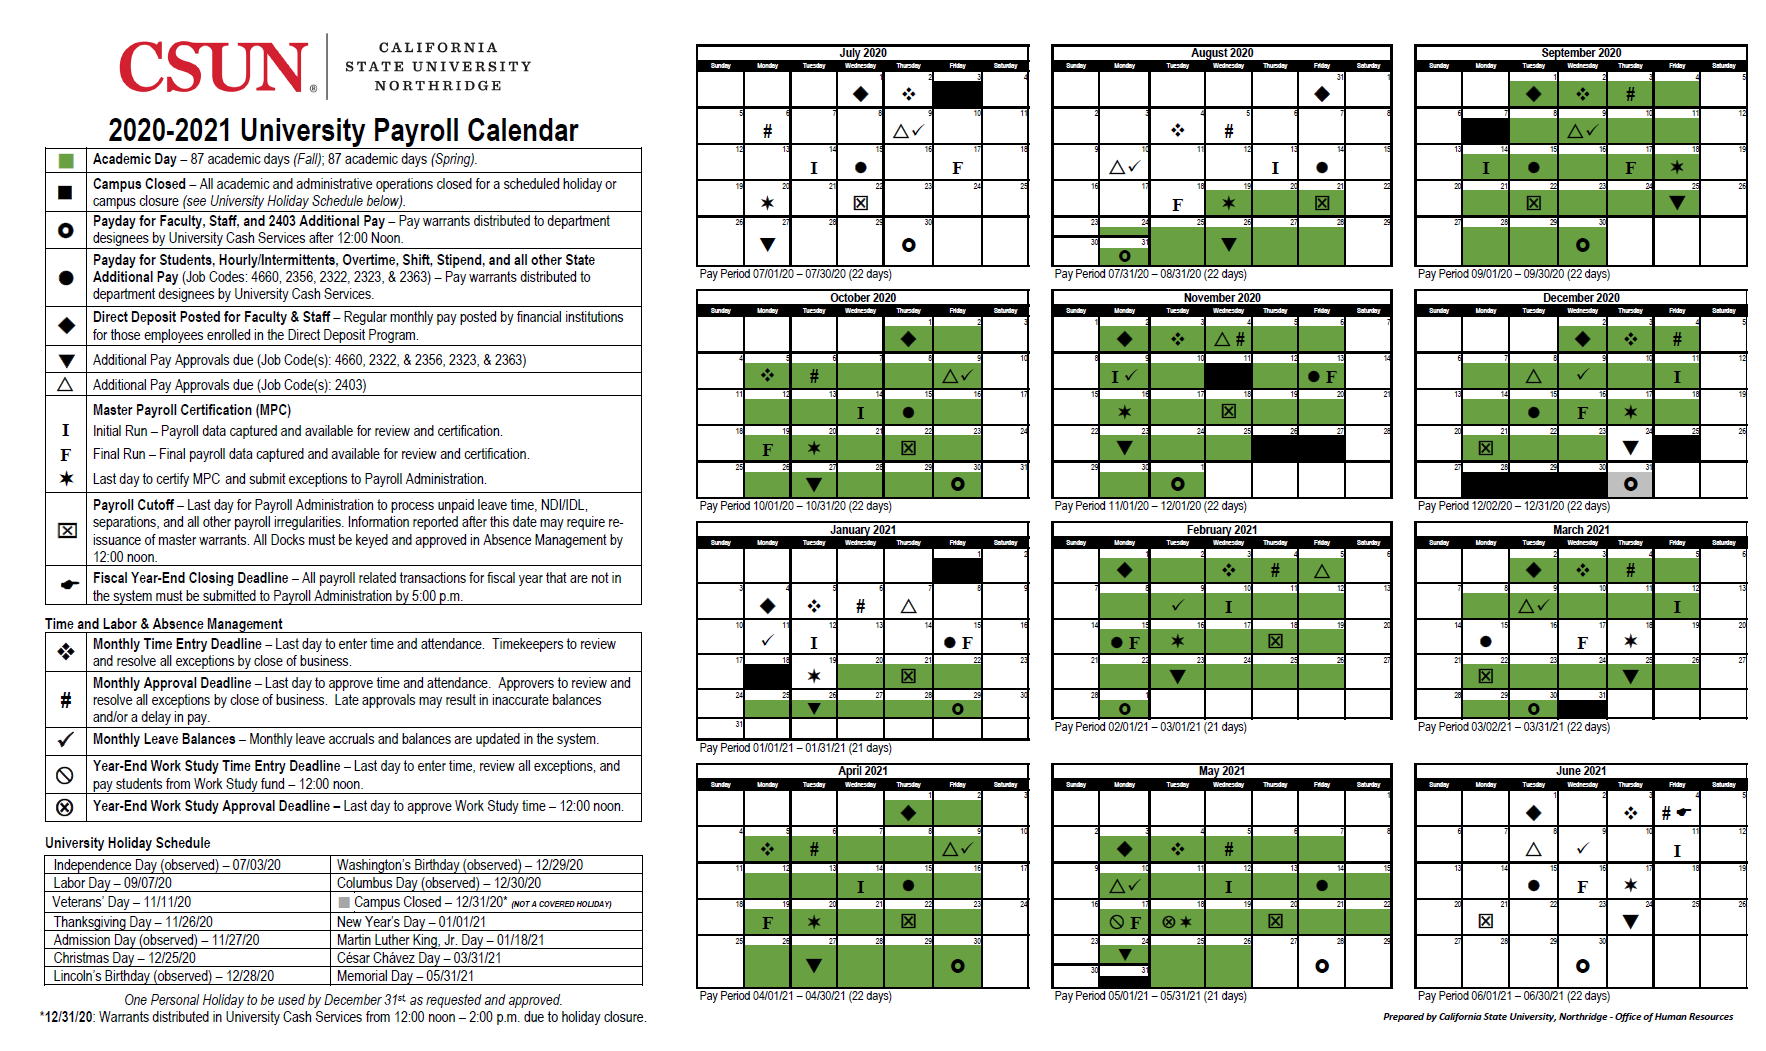 California State University (CSUN) Northridge Payroll Calendar